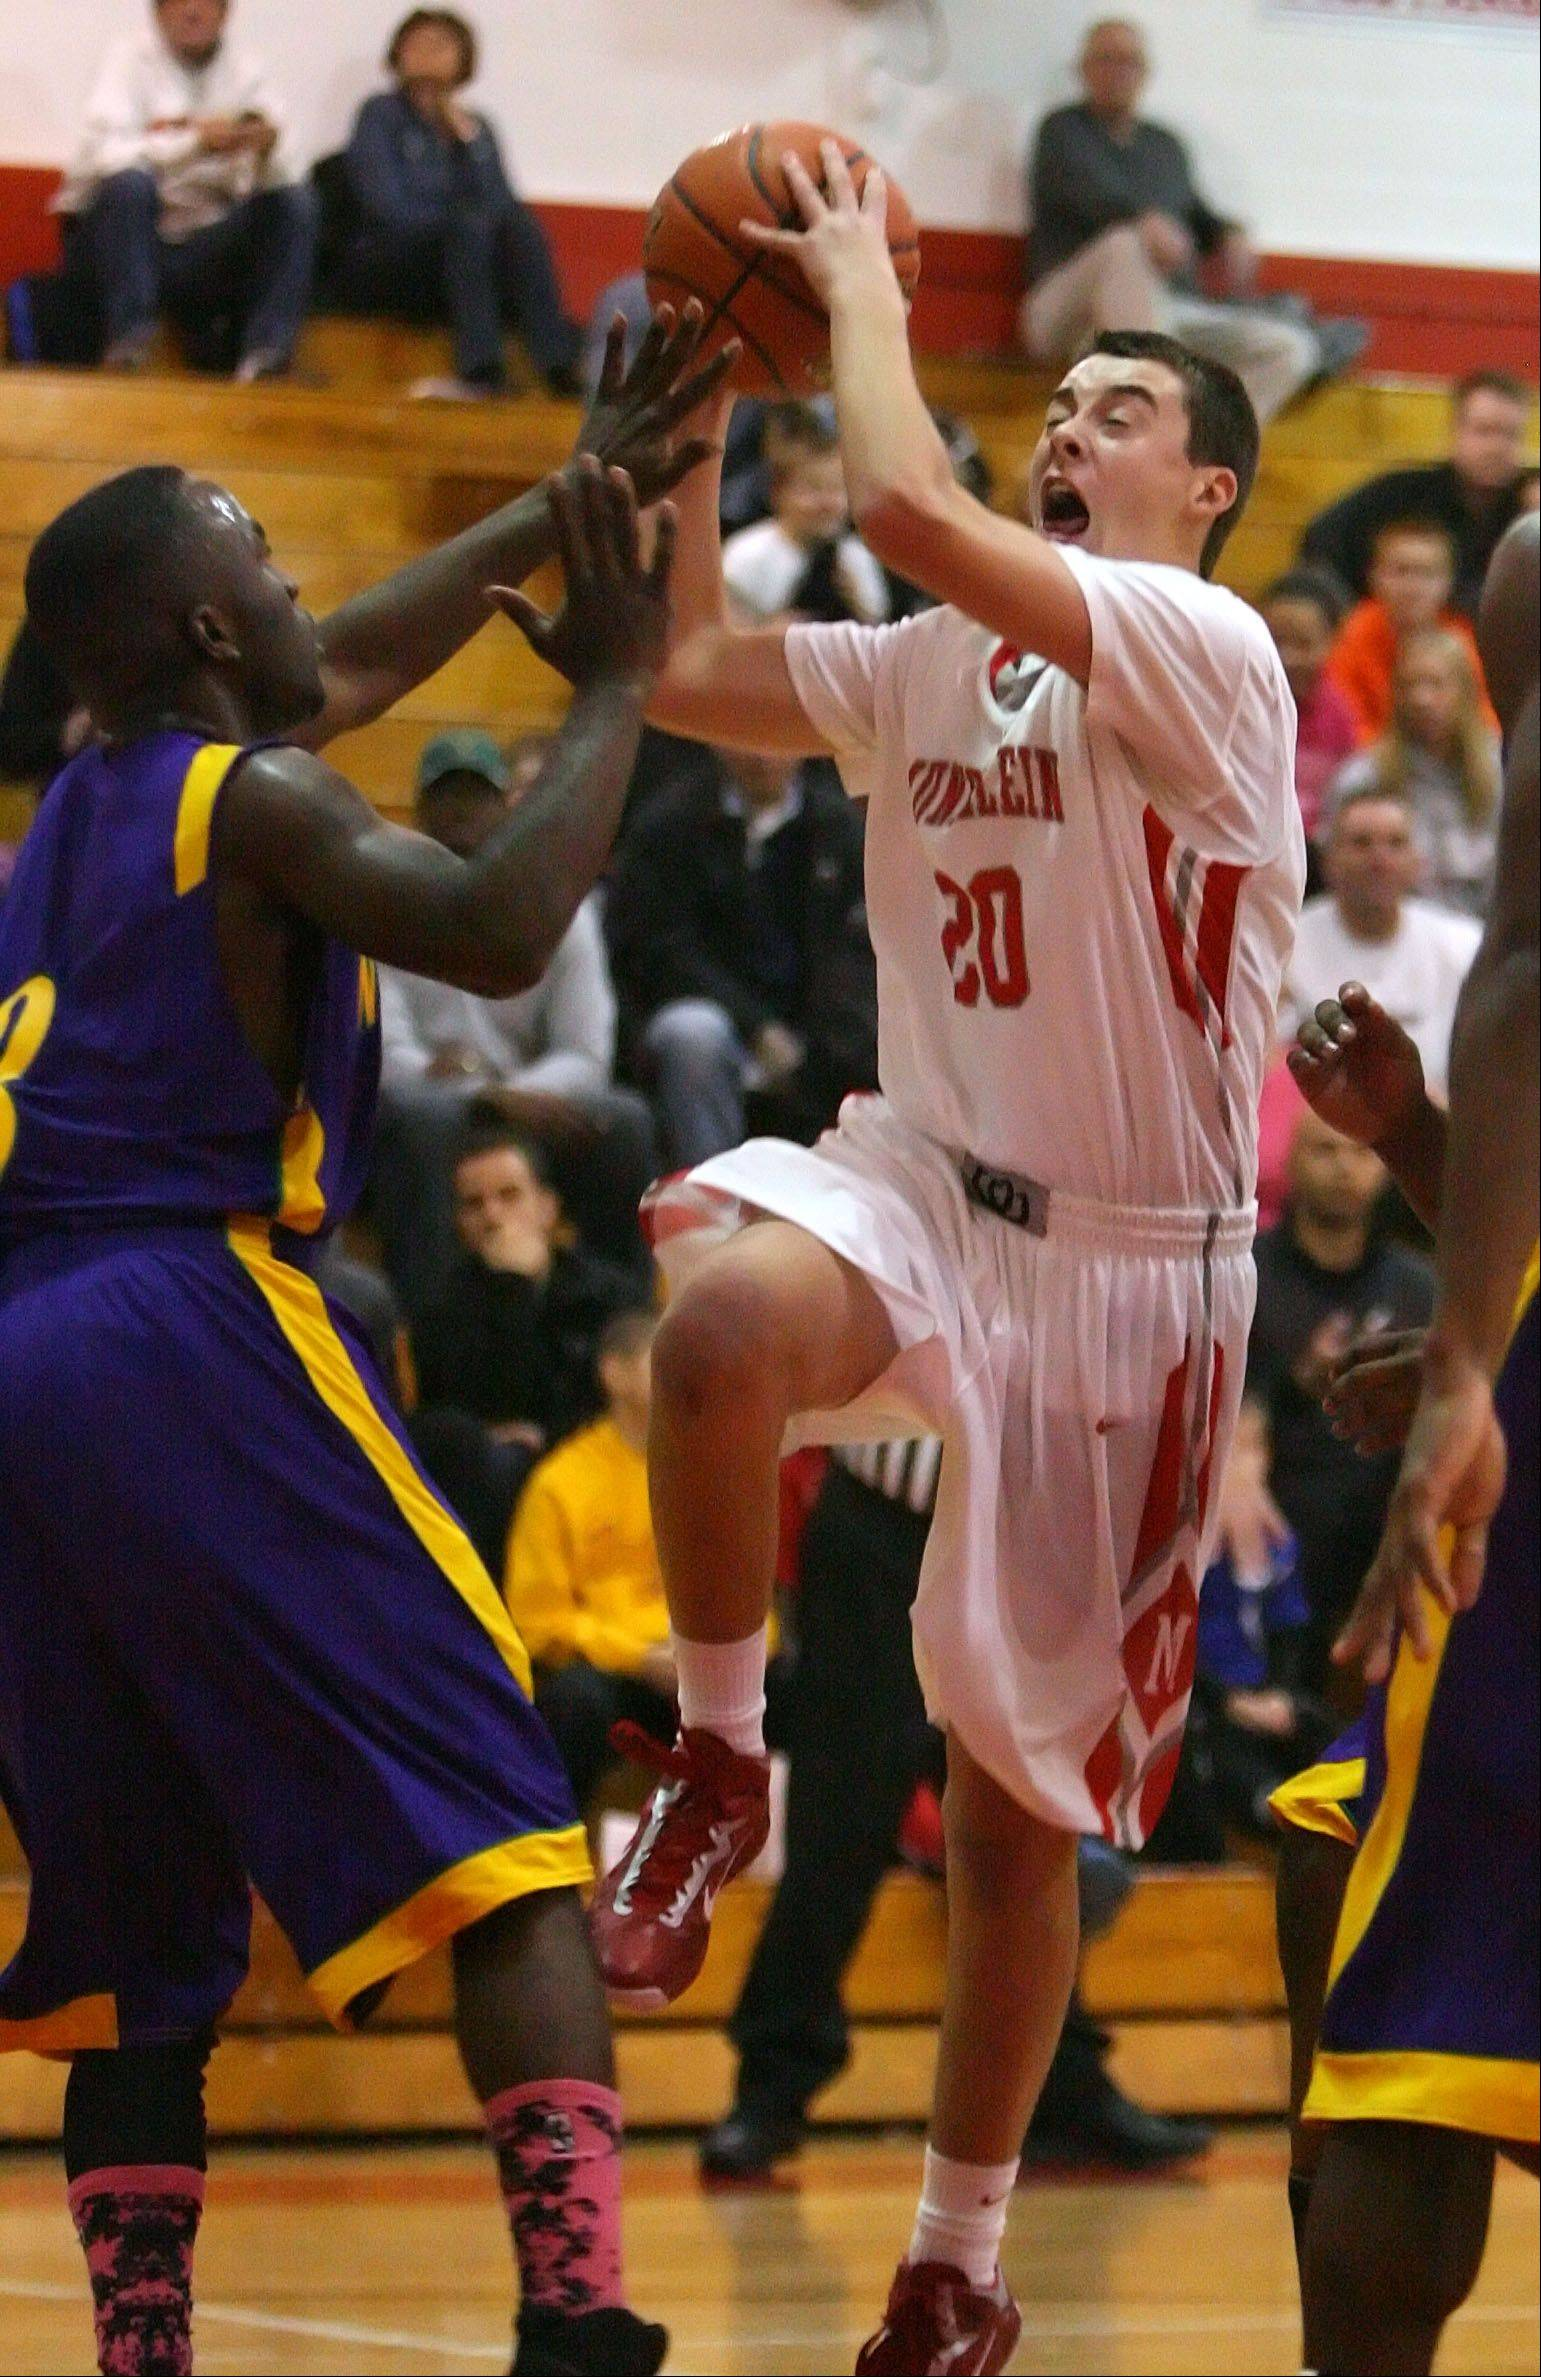 Mundelein's Derek Parola, right, drives on Waukegan's Cornell Fort on Friday night at Mundelein.